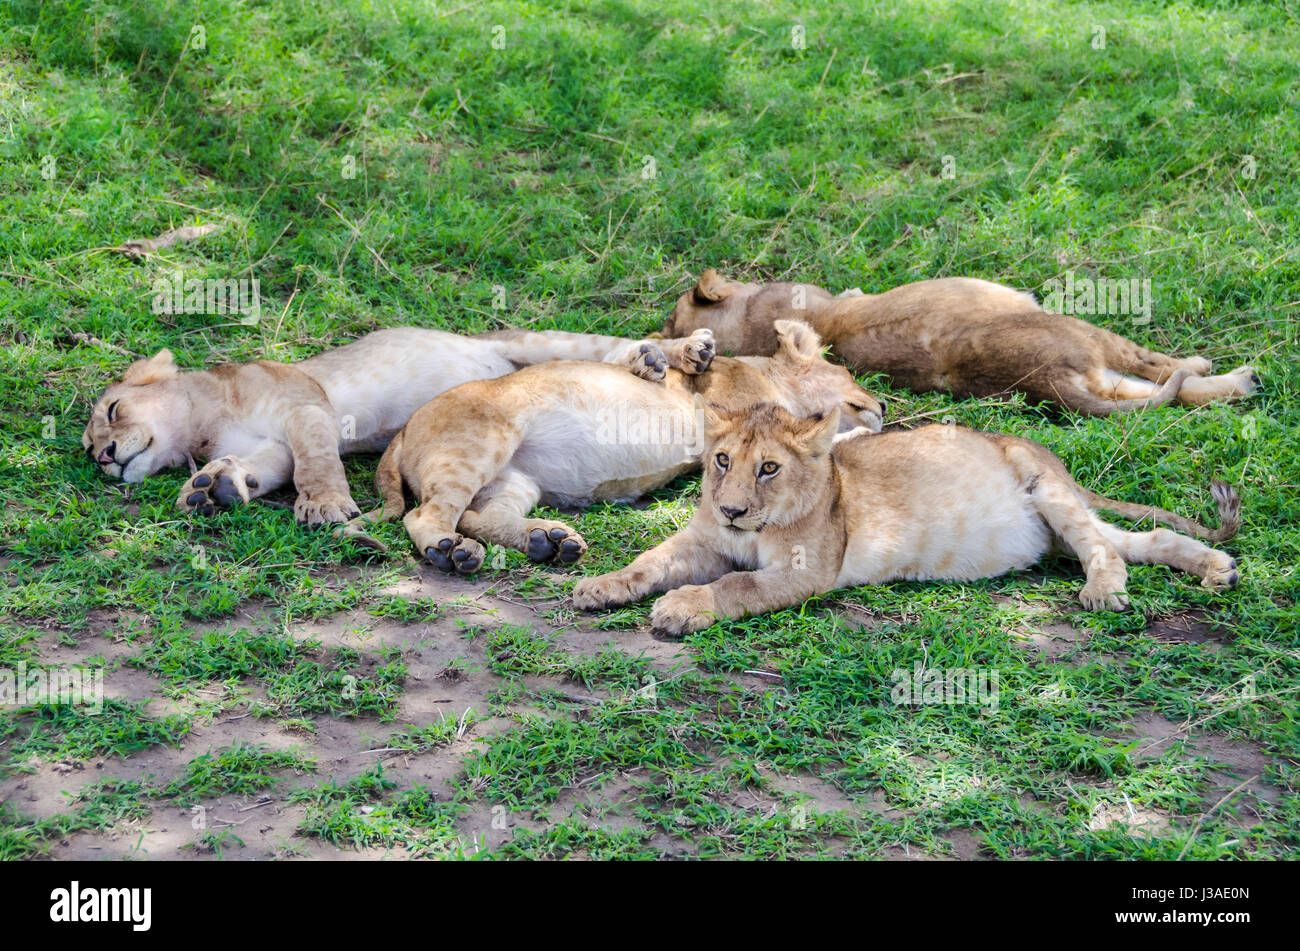 Jung lions sleeping on the grass in Serengeti, Tansania - Stock Image